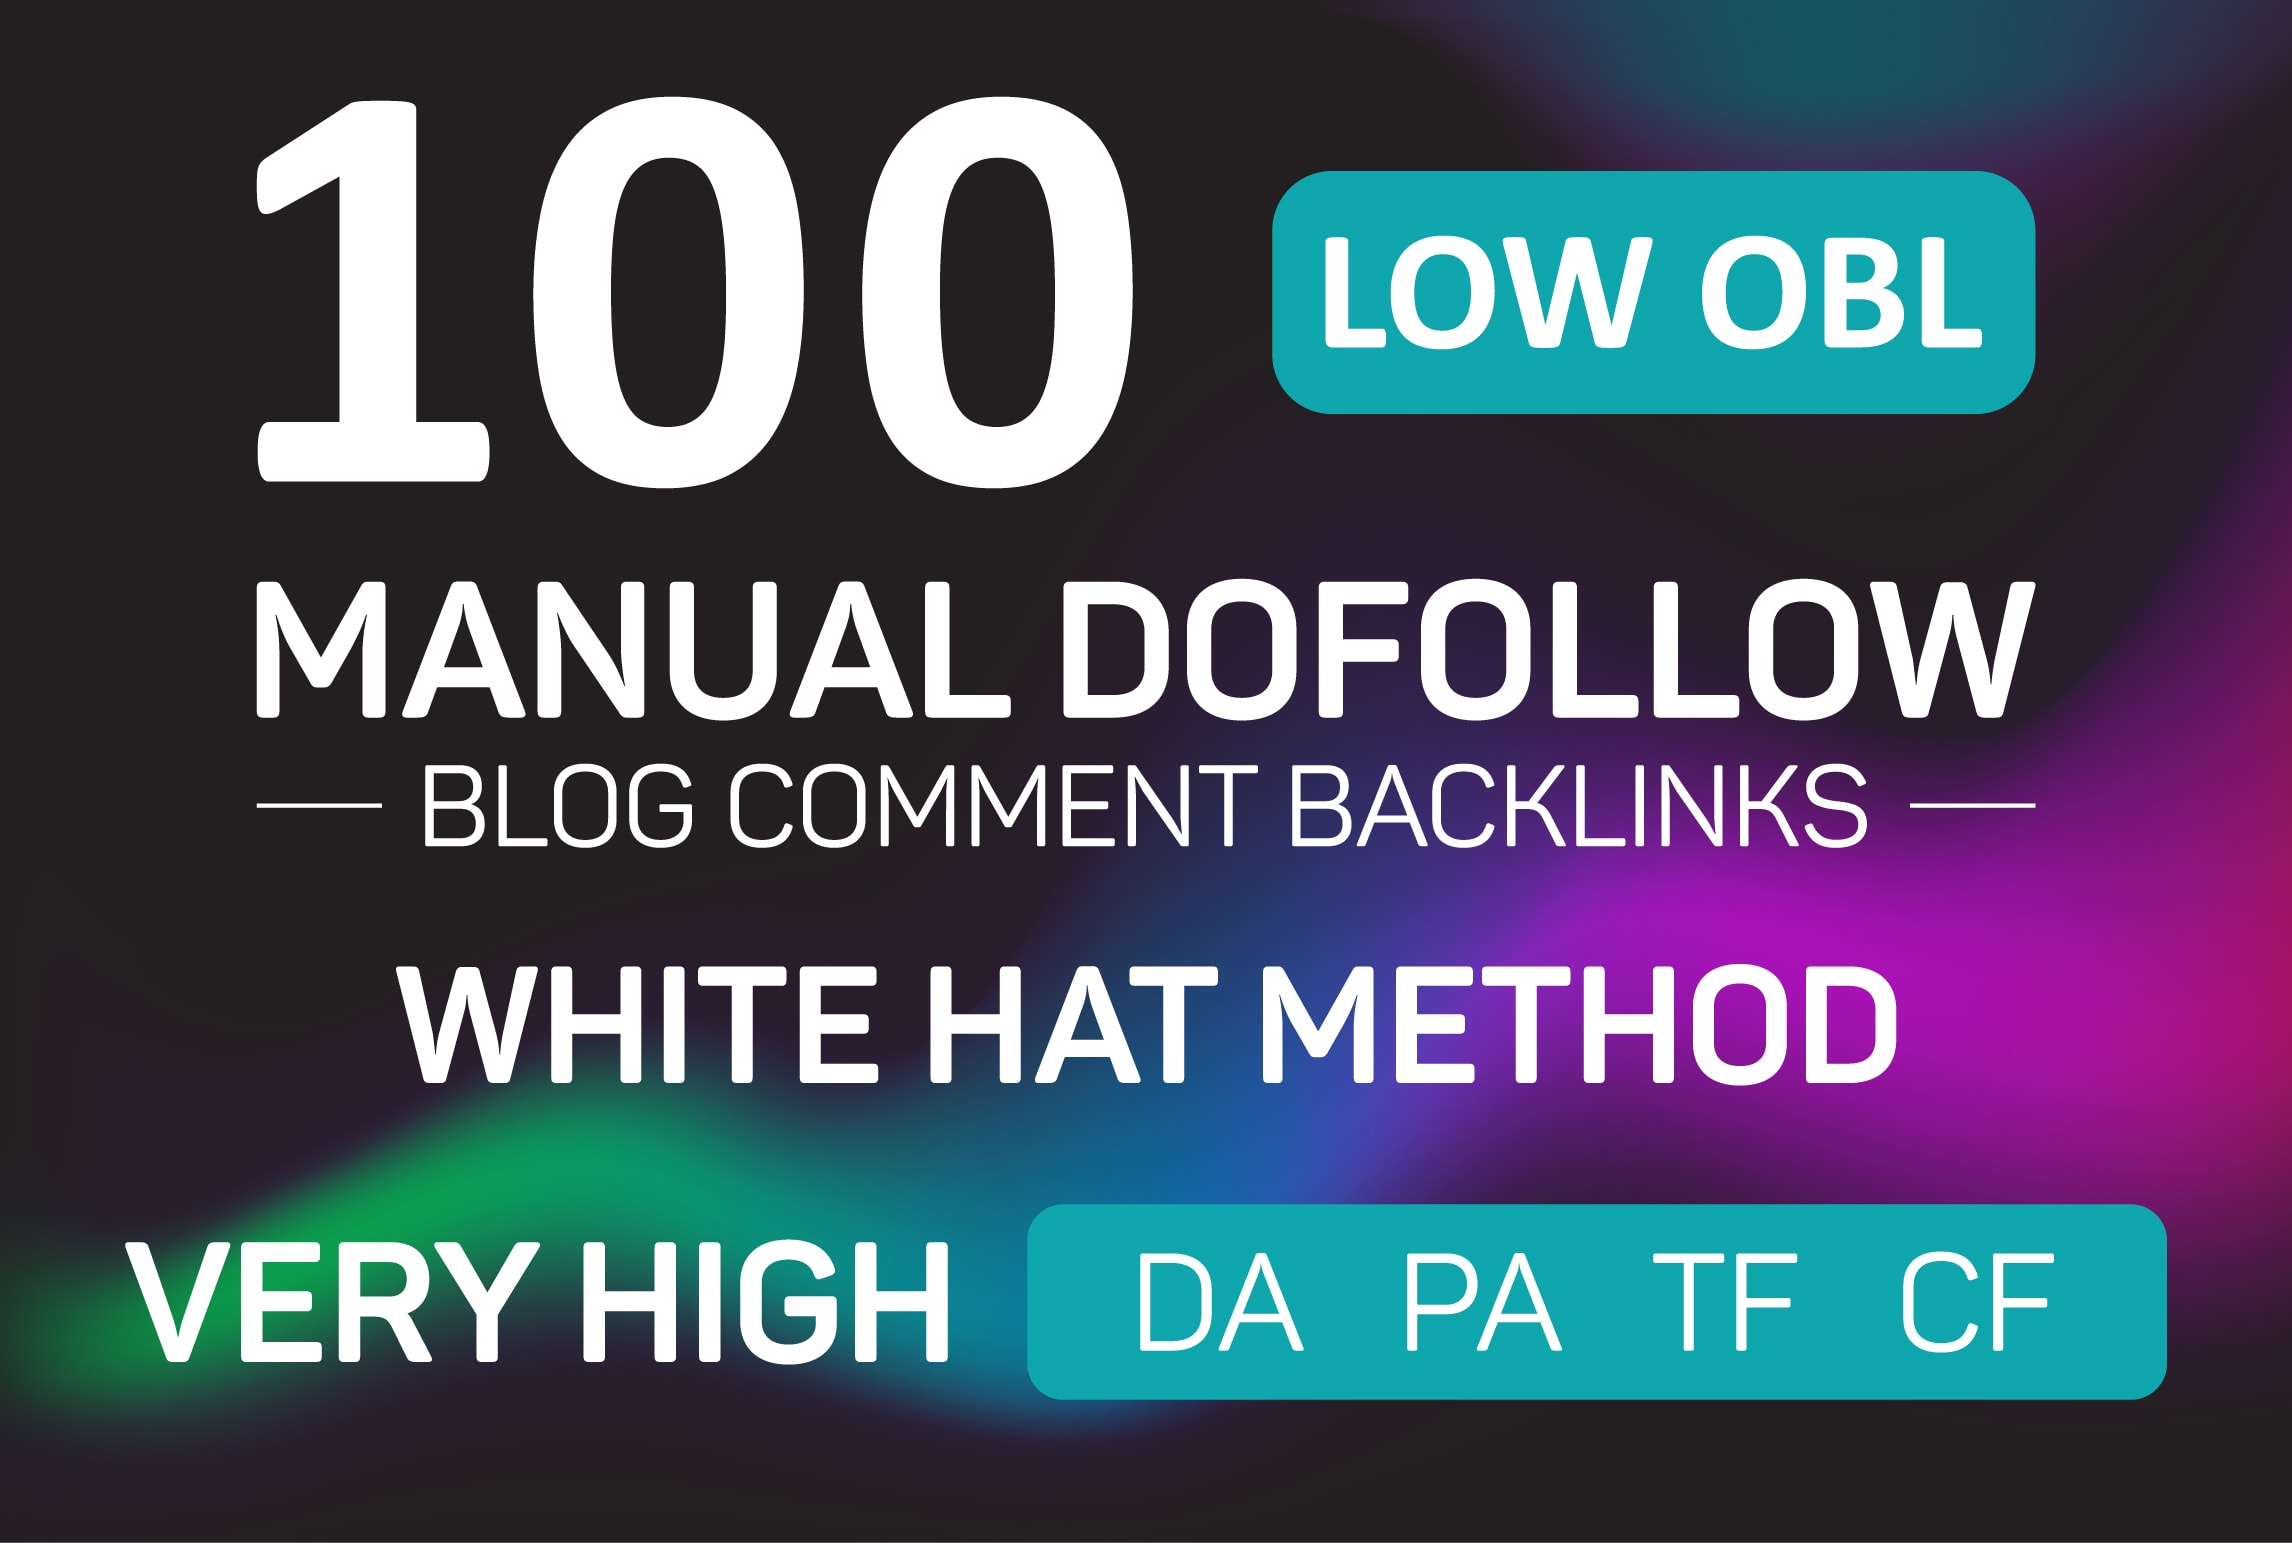 I Will Provide 100 High Da Pa Dofollow Blog Comments Backlink in High Authority